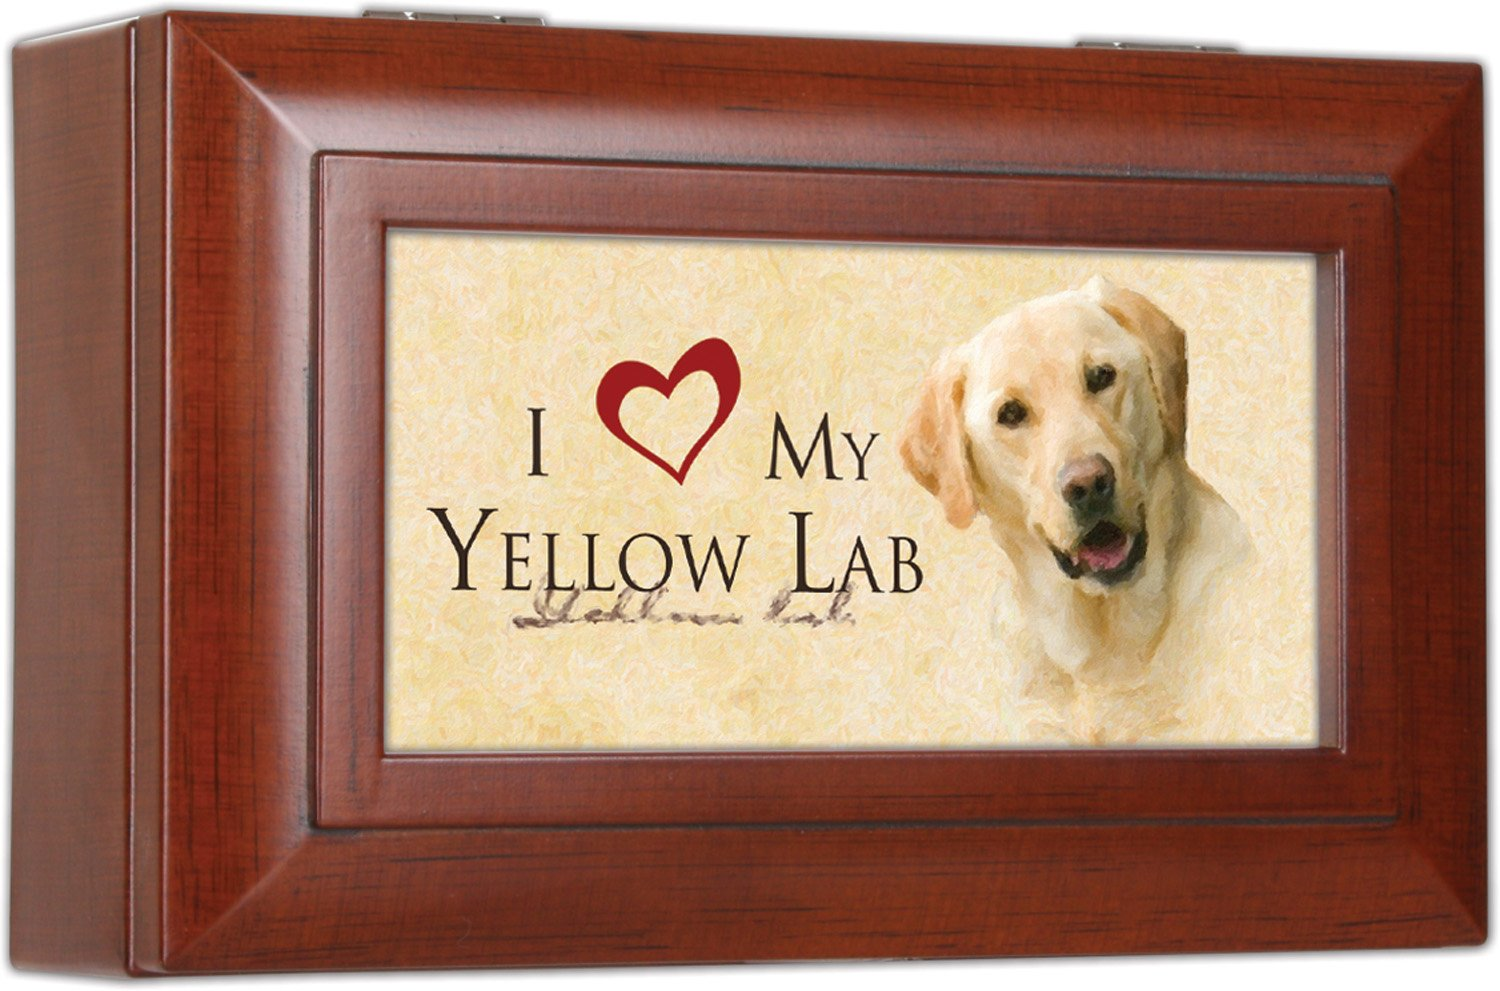 Love My Yellow Lab Cottage Garden Rich Woodgrain Finish Petite Jewelry Music Box - Plays Song Wonderful World